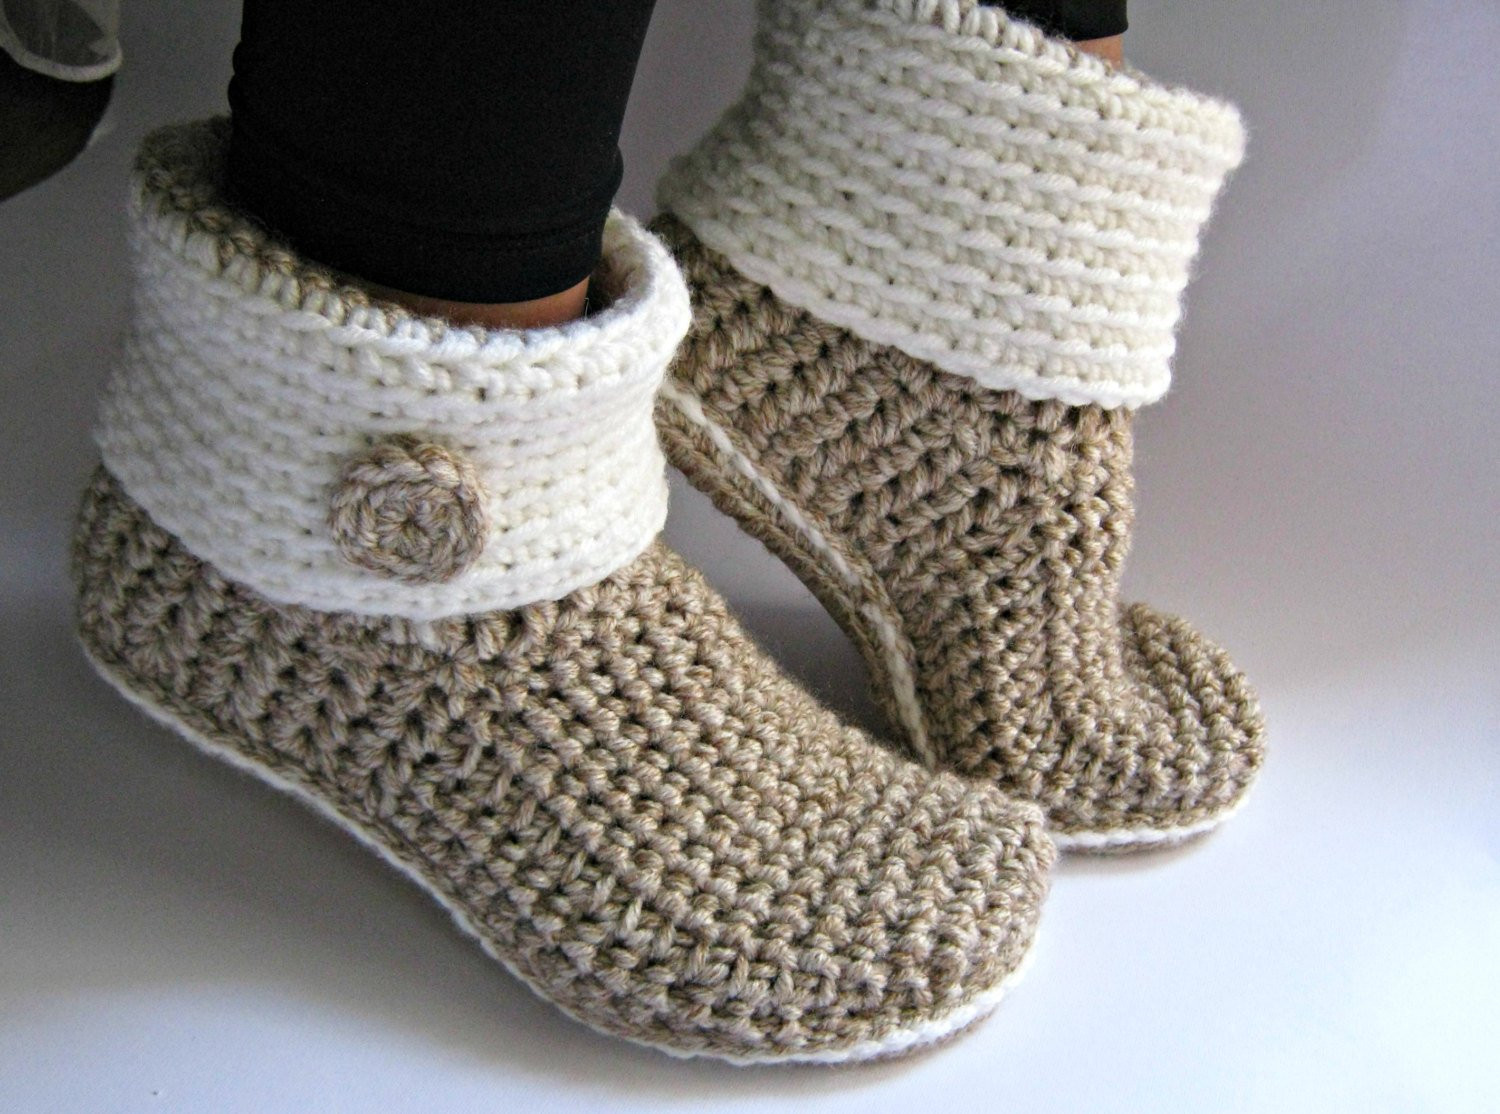 Crochet Boots Pattern Free Unique Crochet Slipper Boots with Eco Leather soles Women Slippers Of Amazing 44 Models Crochet Boots Pattern Free